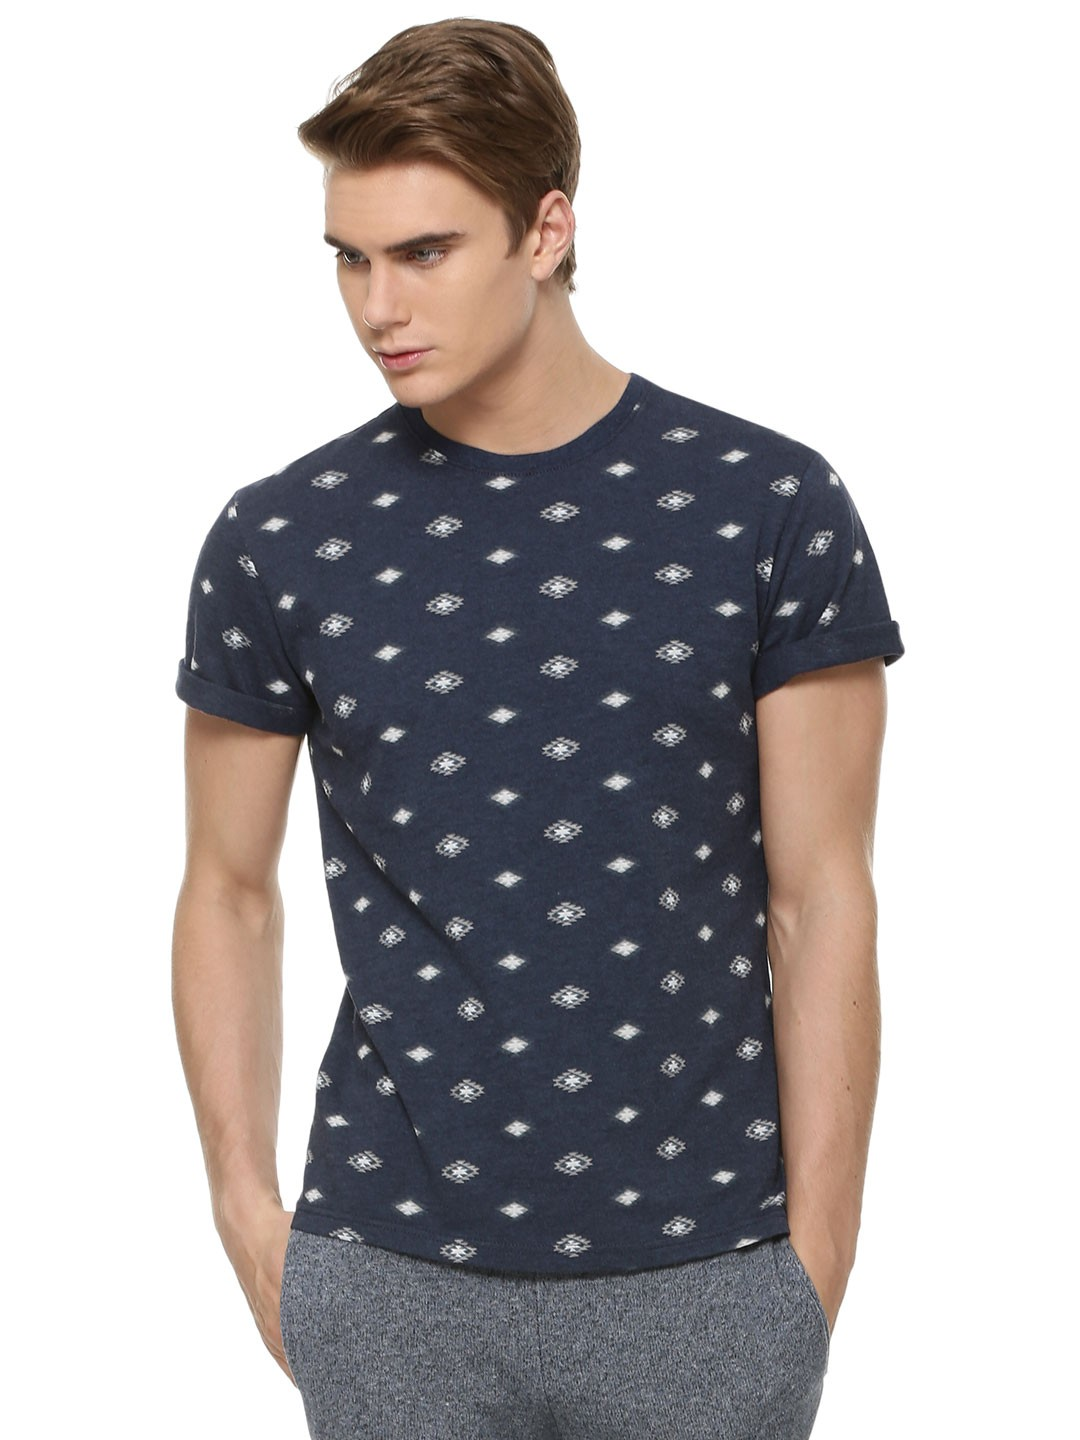 Buy zobello printed summer t shirt for men men 39 s blue t for Printed t shirts india